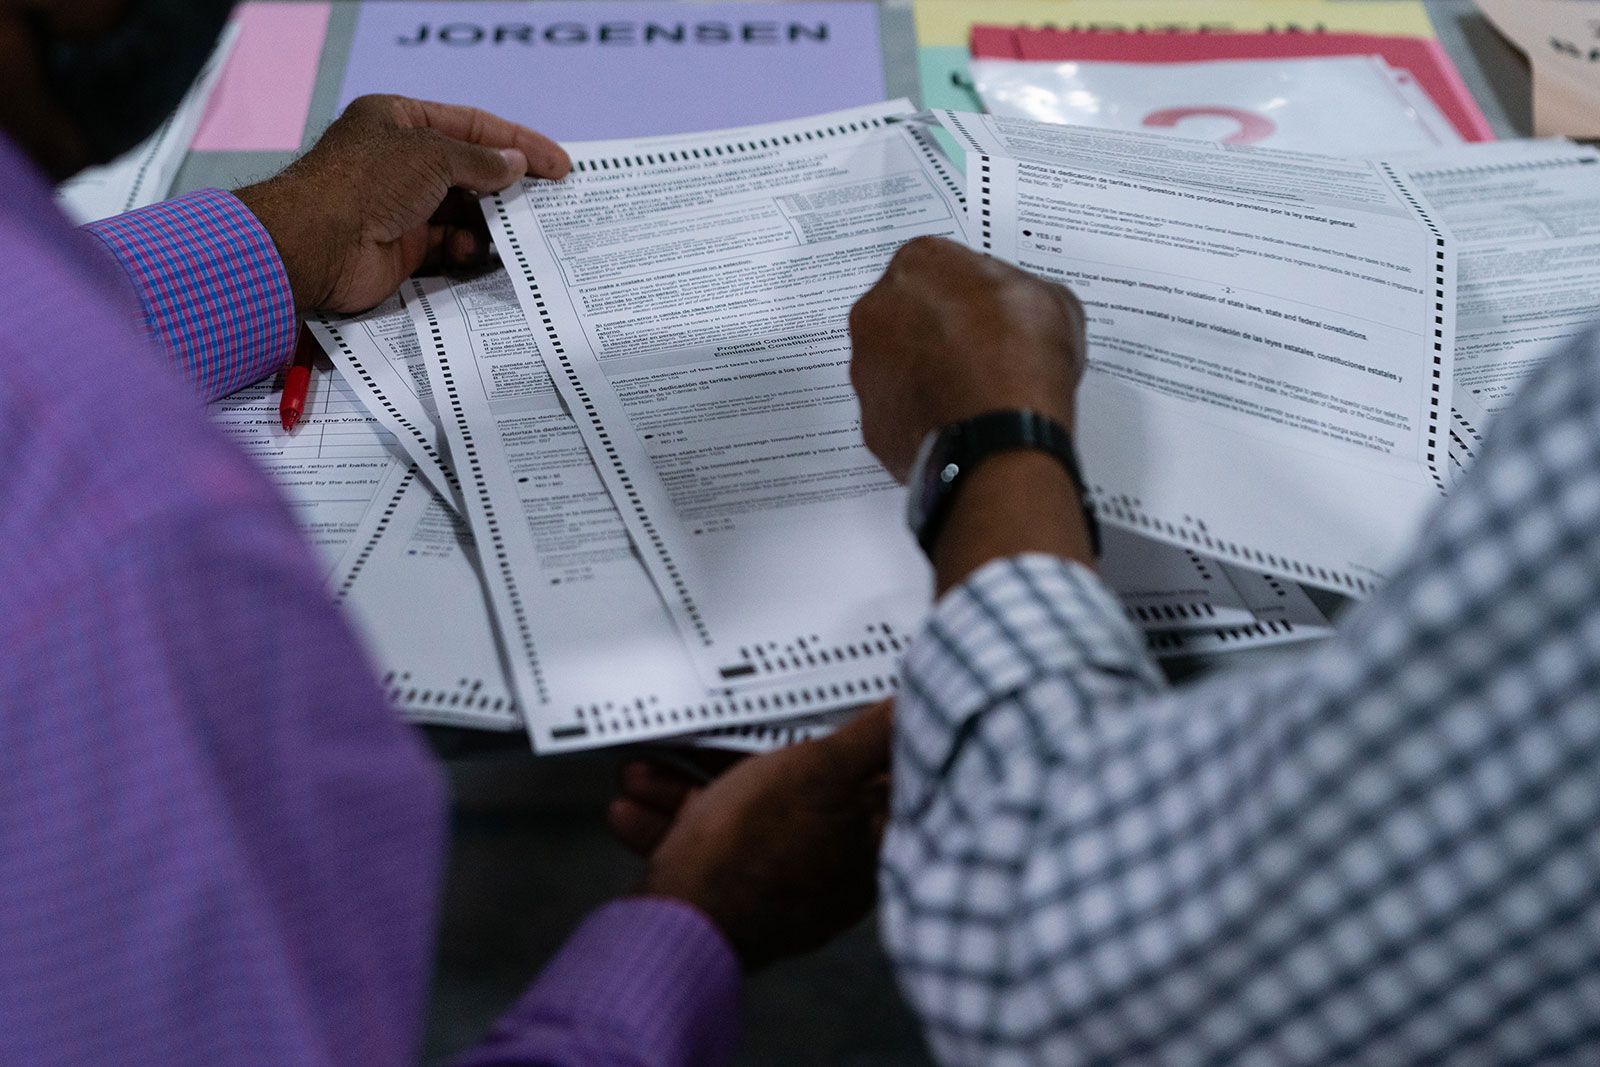 People hand count ballots during an audit at the Gwinnett County Voter Registration office in Lawrenceville, Georgia, on November 13.